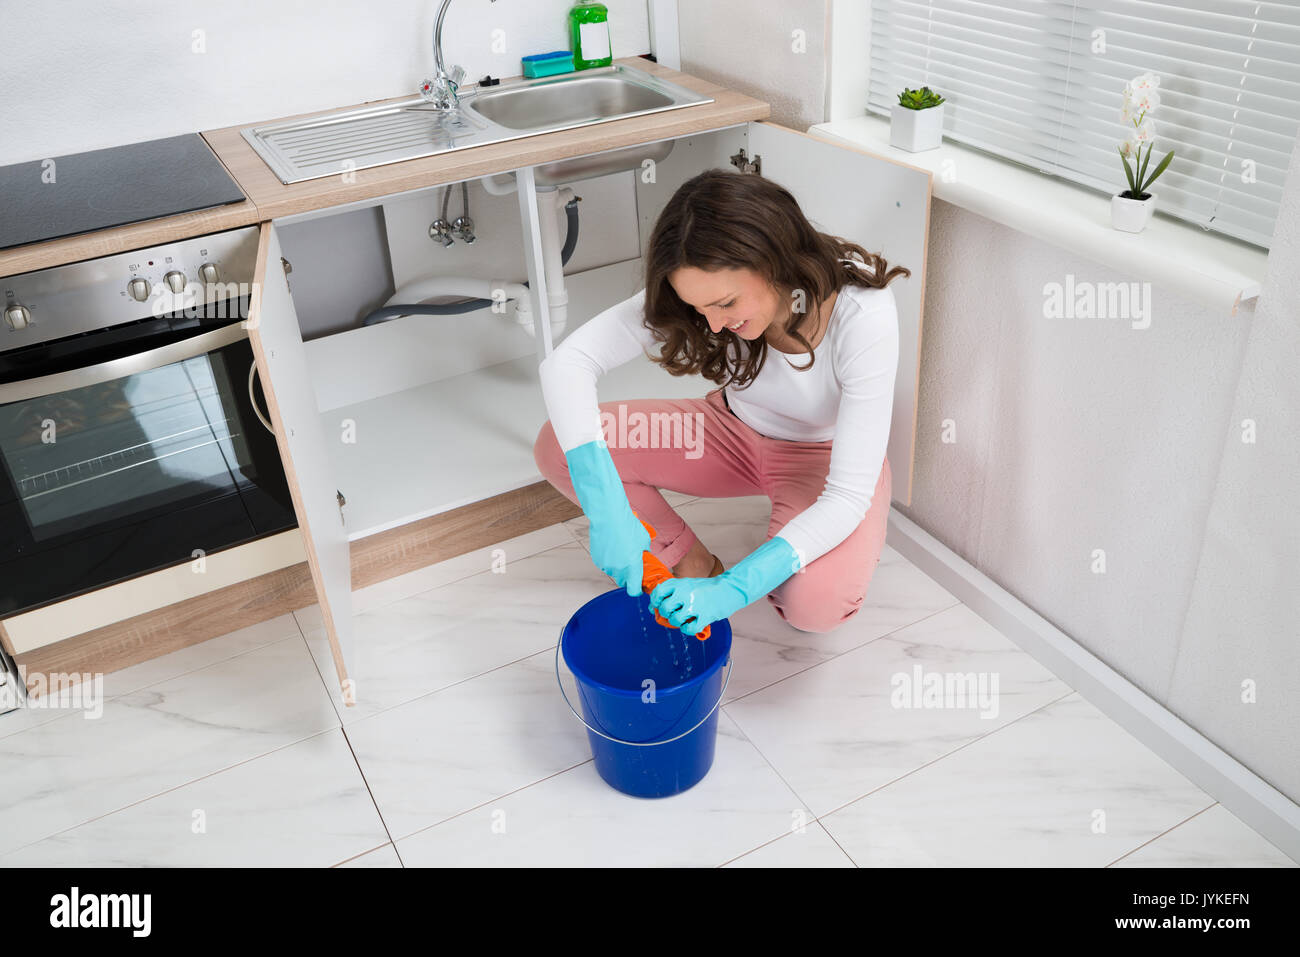 leaking bucket stock photos leaking bucket stock images alamy. Black Bedroom Furniture Sets. Home Design Ideas